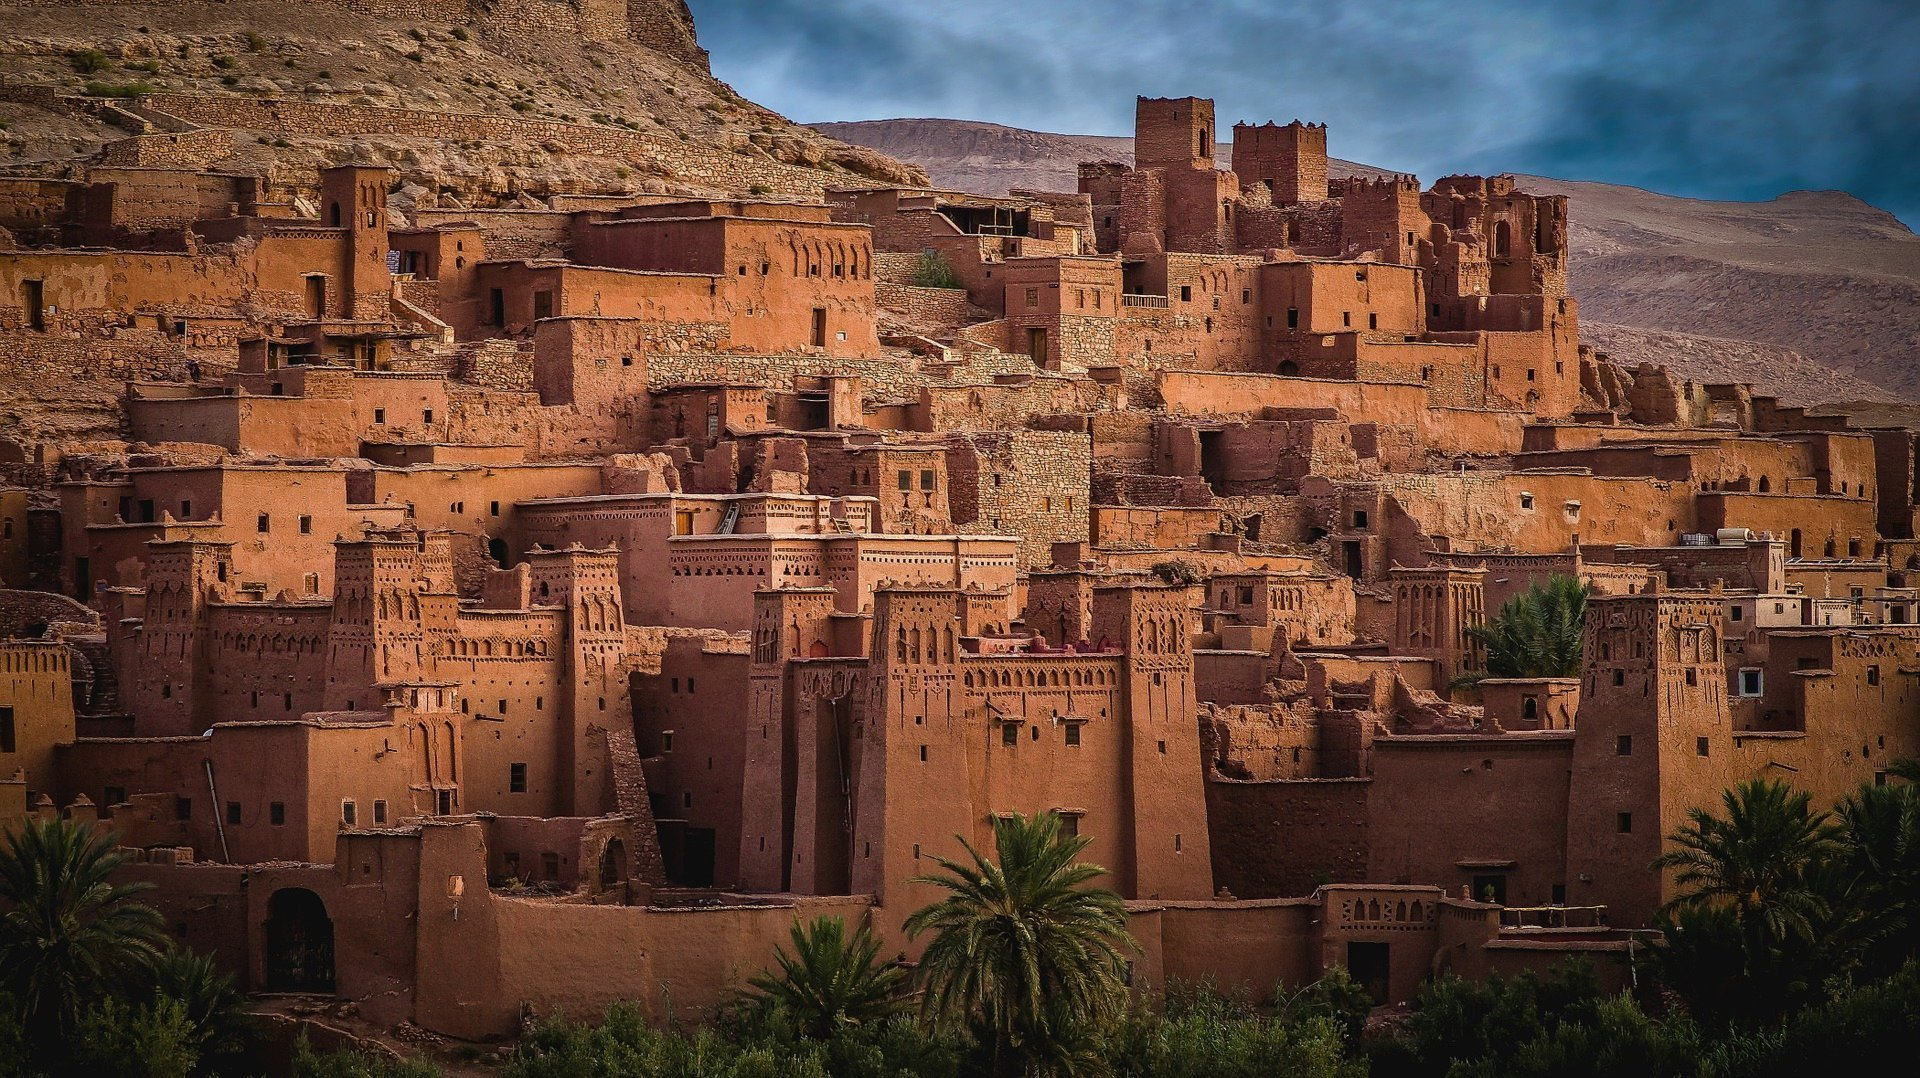 5-Day Sahara Escape from Fes to Marrakesh - Morocco Itinerary